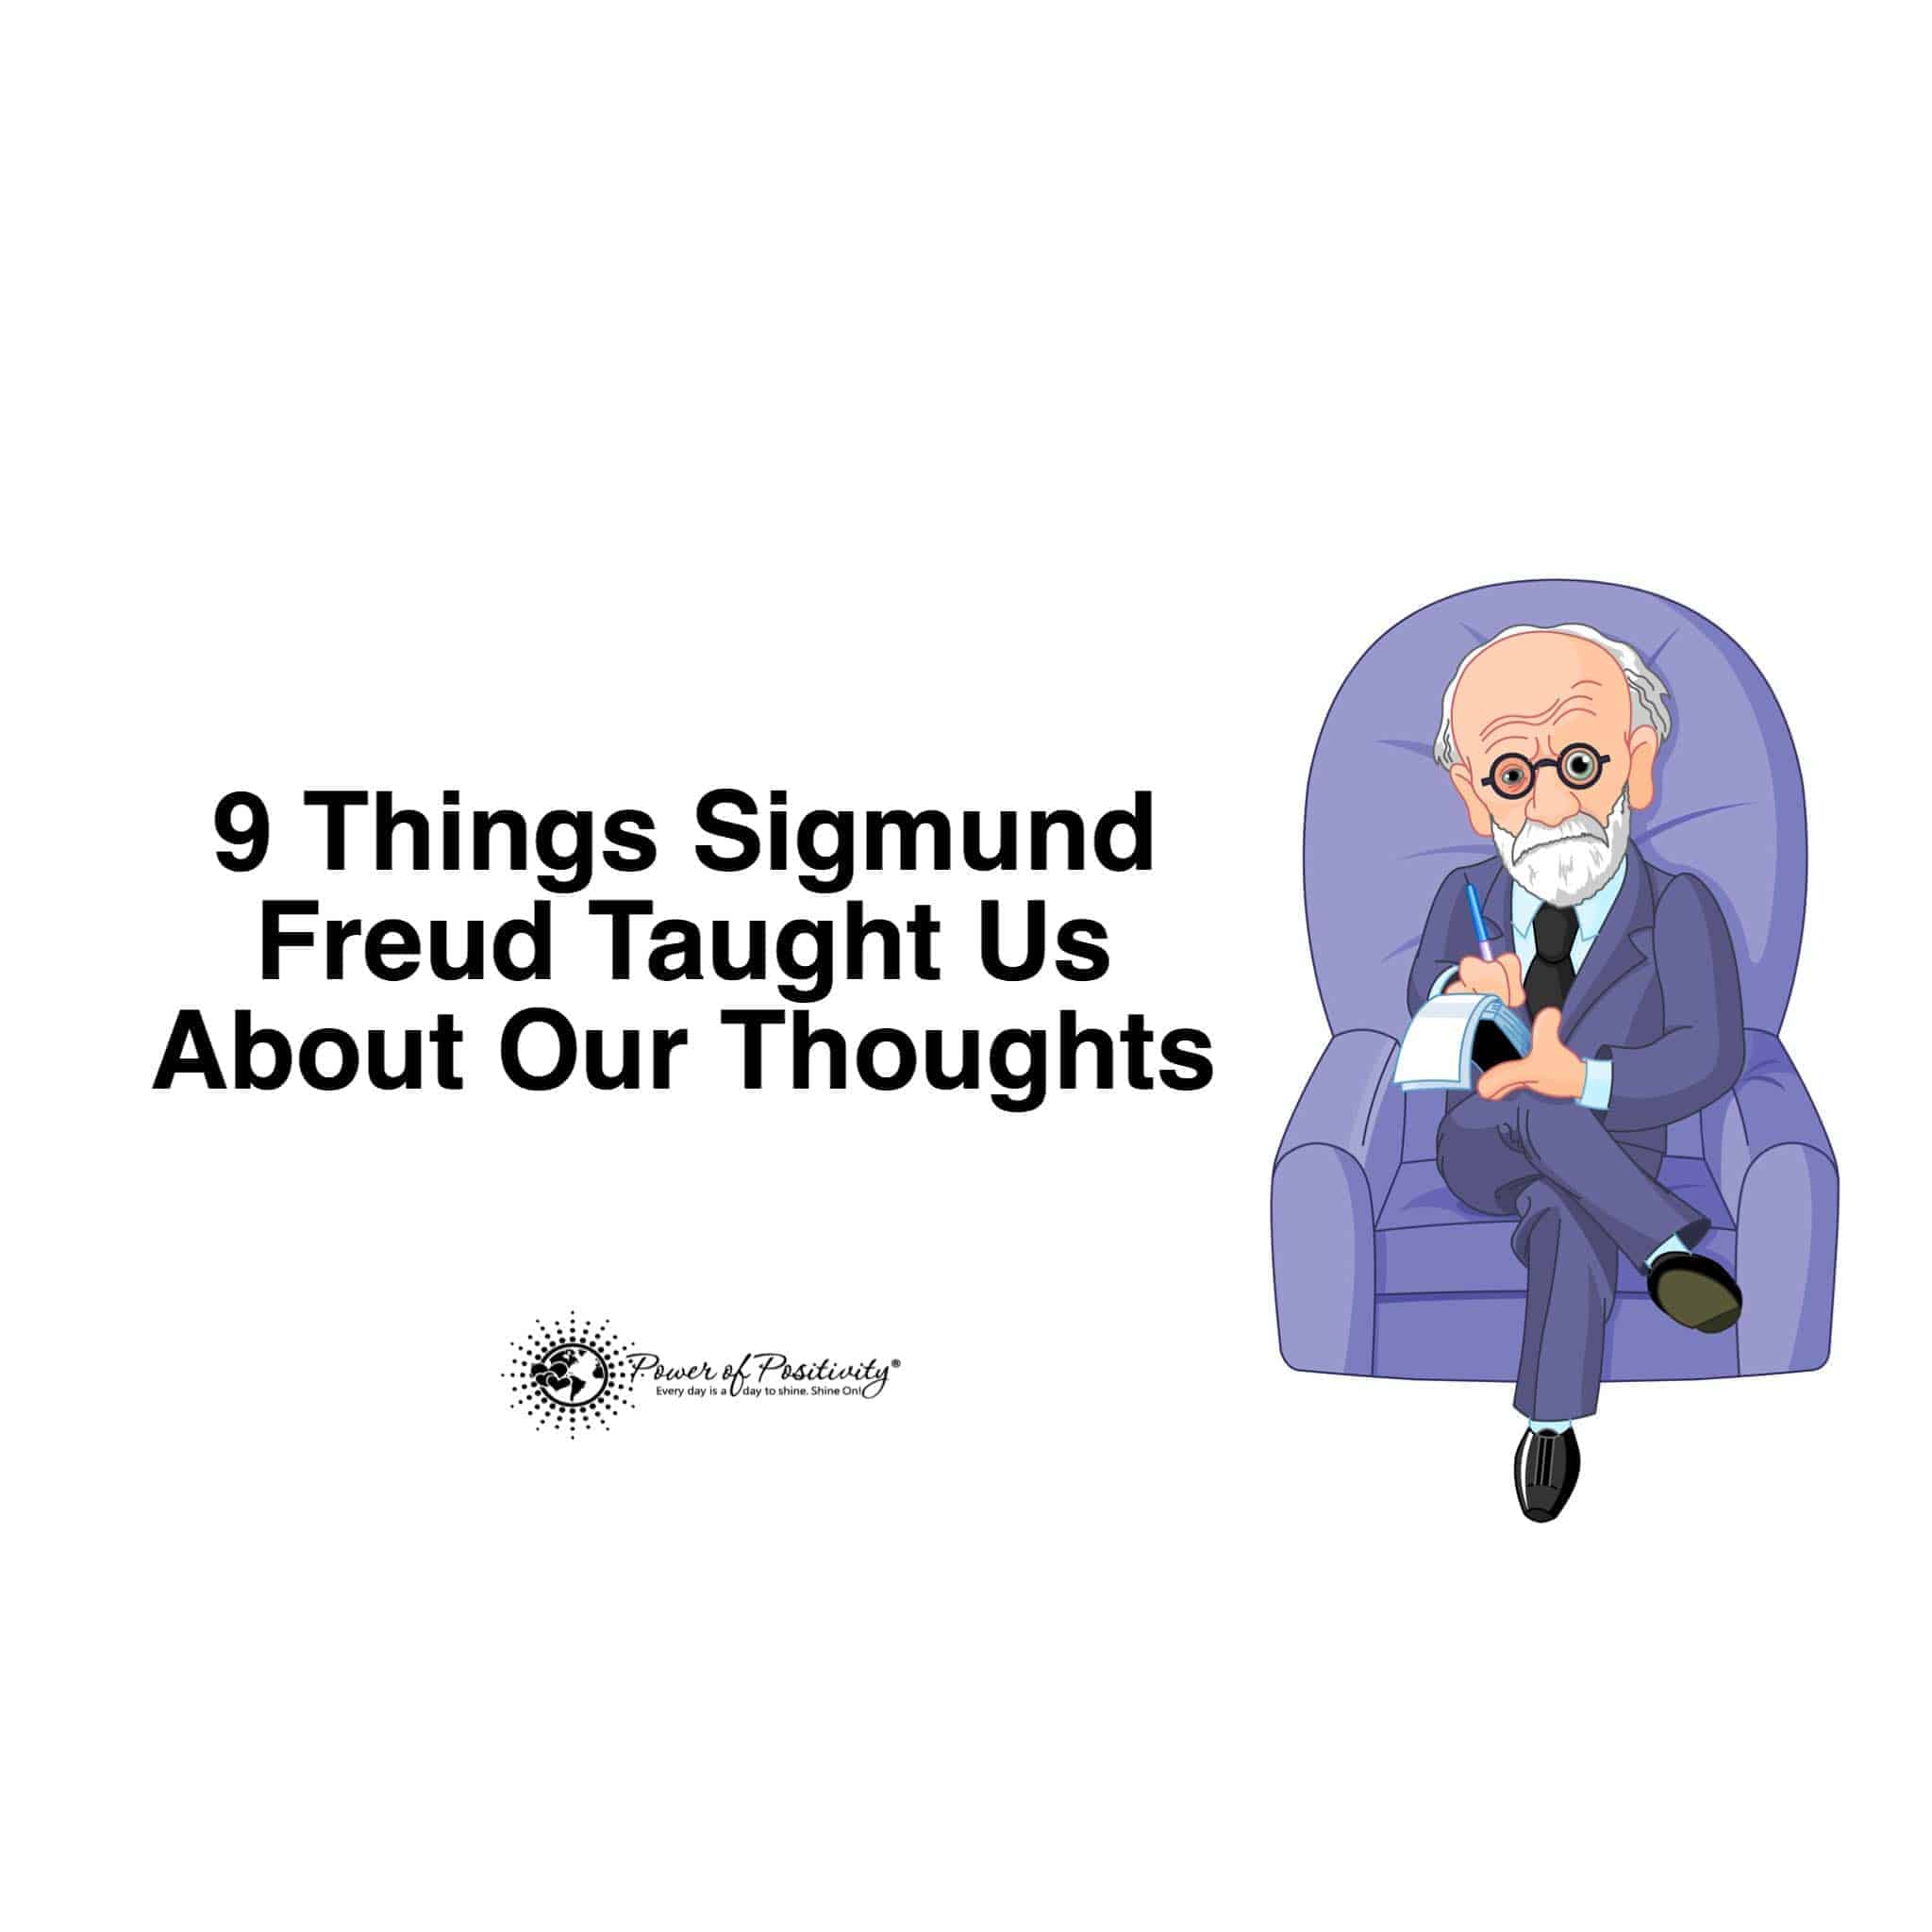 scientific legecy of sigmind freud Sigmund freud was born in what is now czechoslovakia the scientific legacy of sigmund freud: toward a psychodynamically informed psychological science.